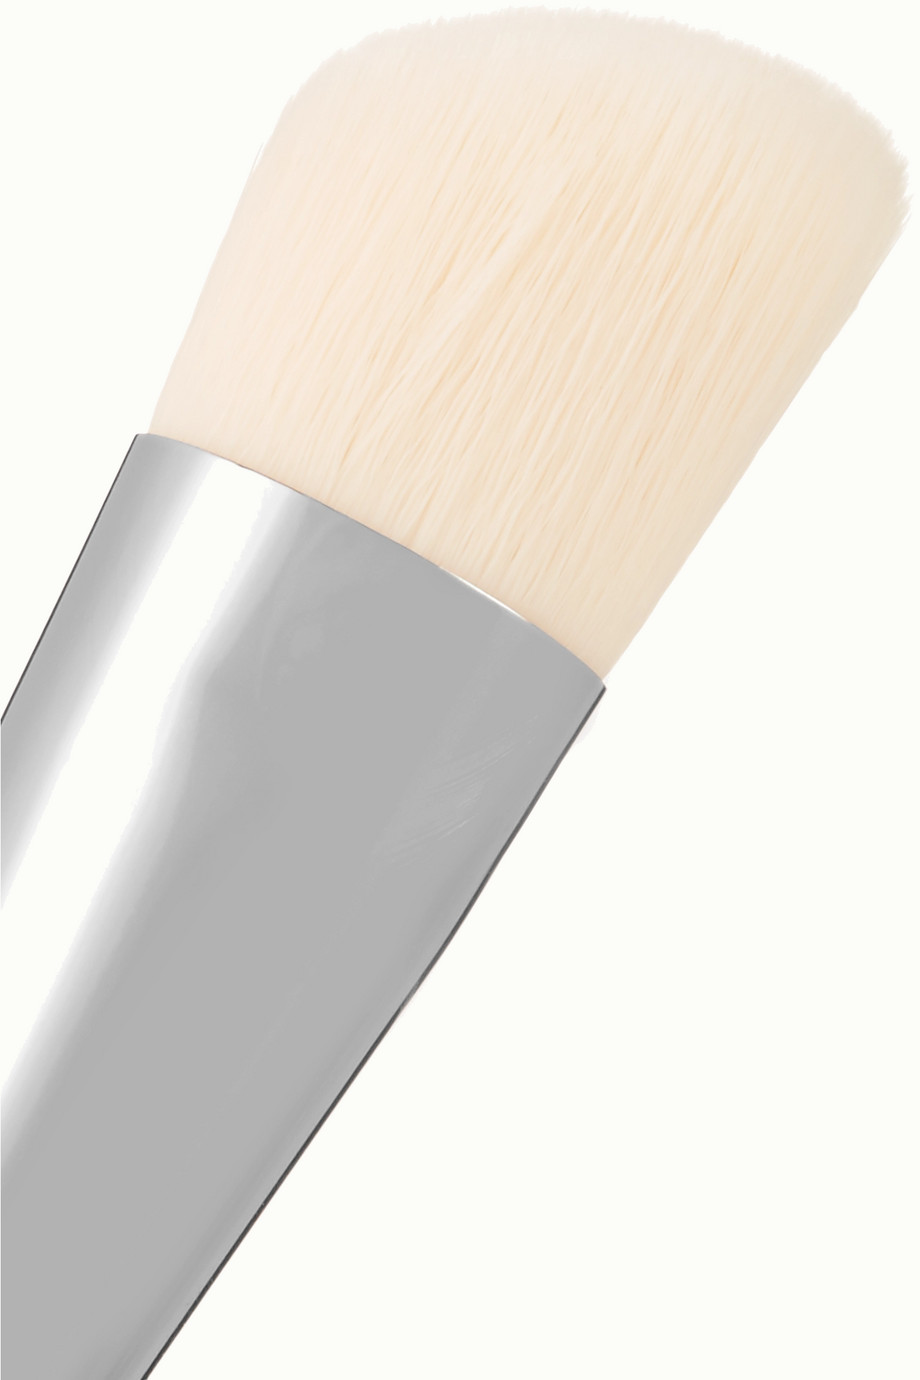 Huda Beauty Bake & Blend Dual-Ended Setting Complexion Brush